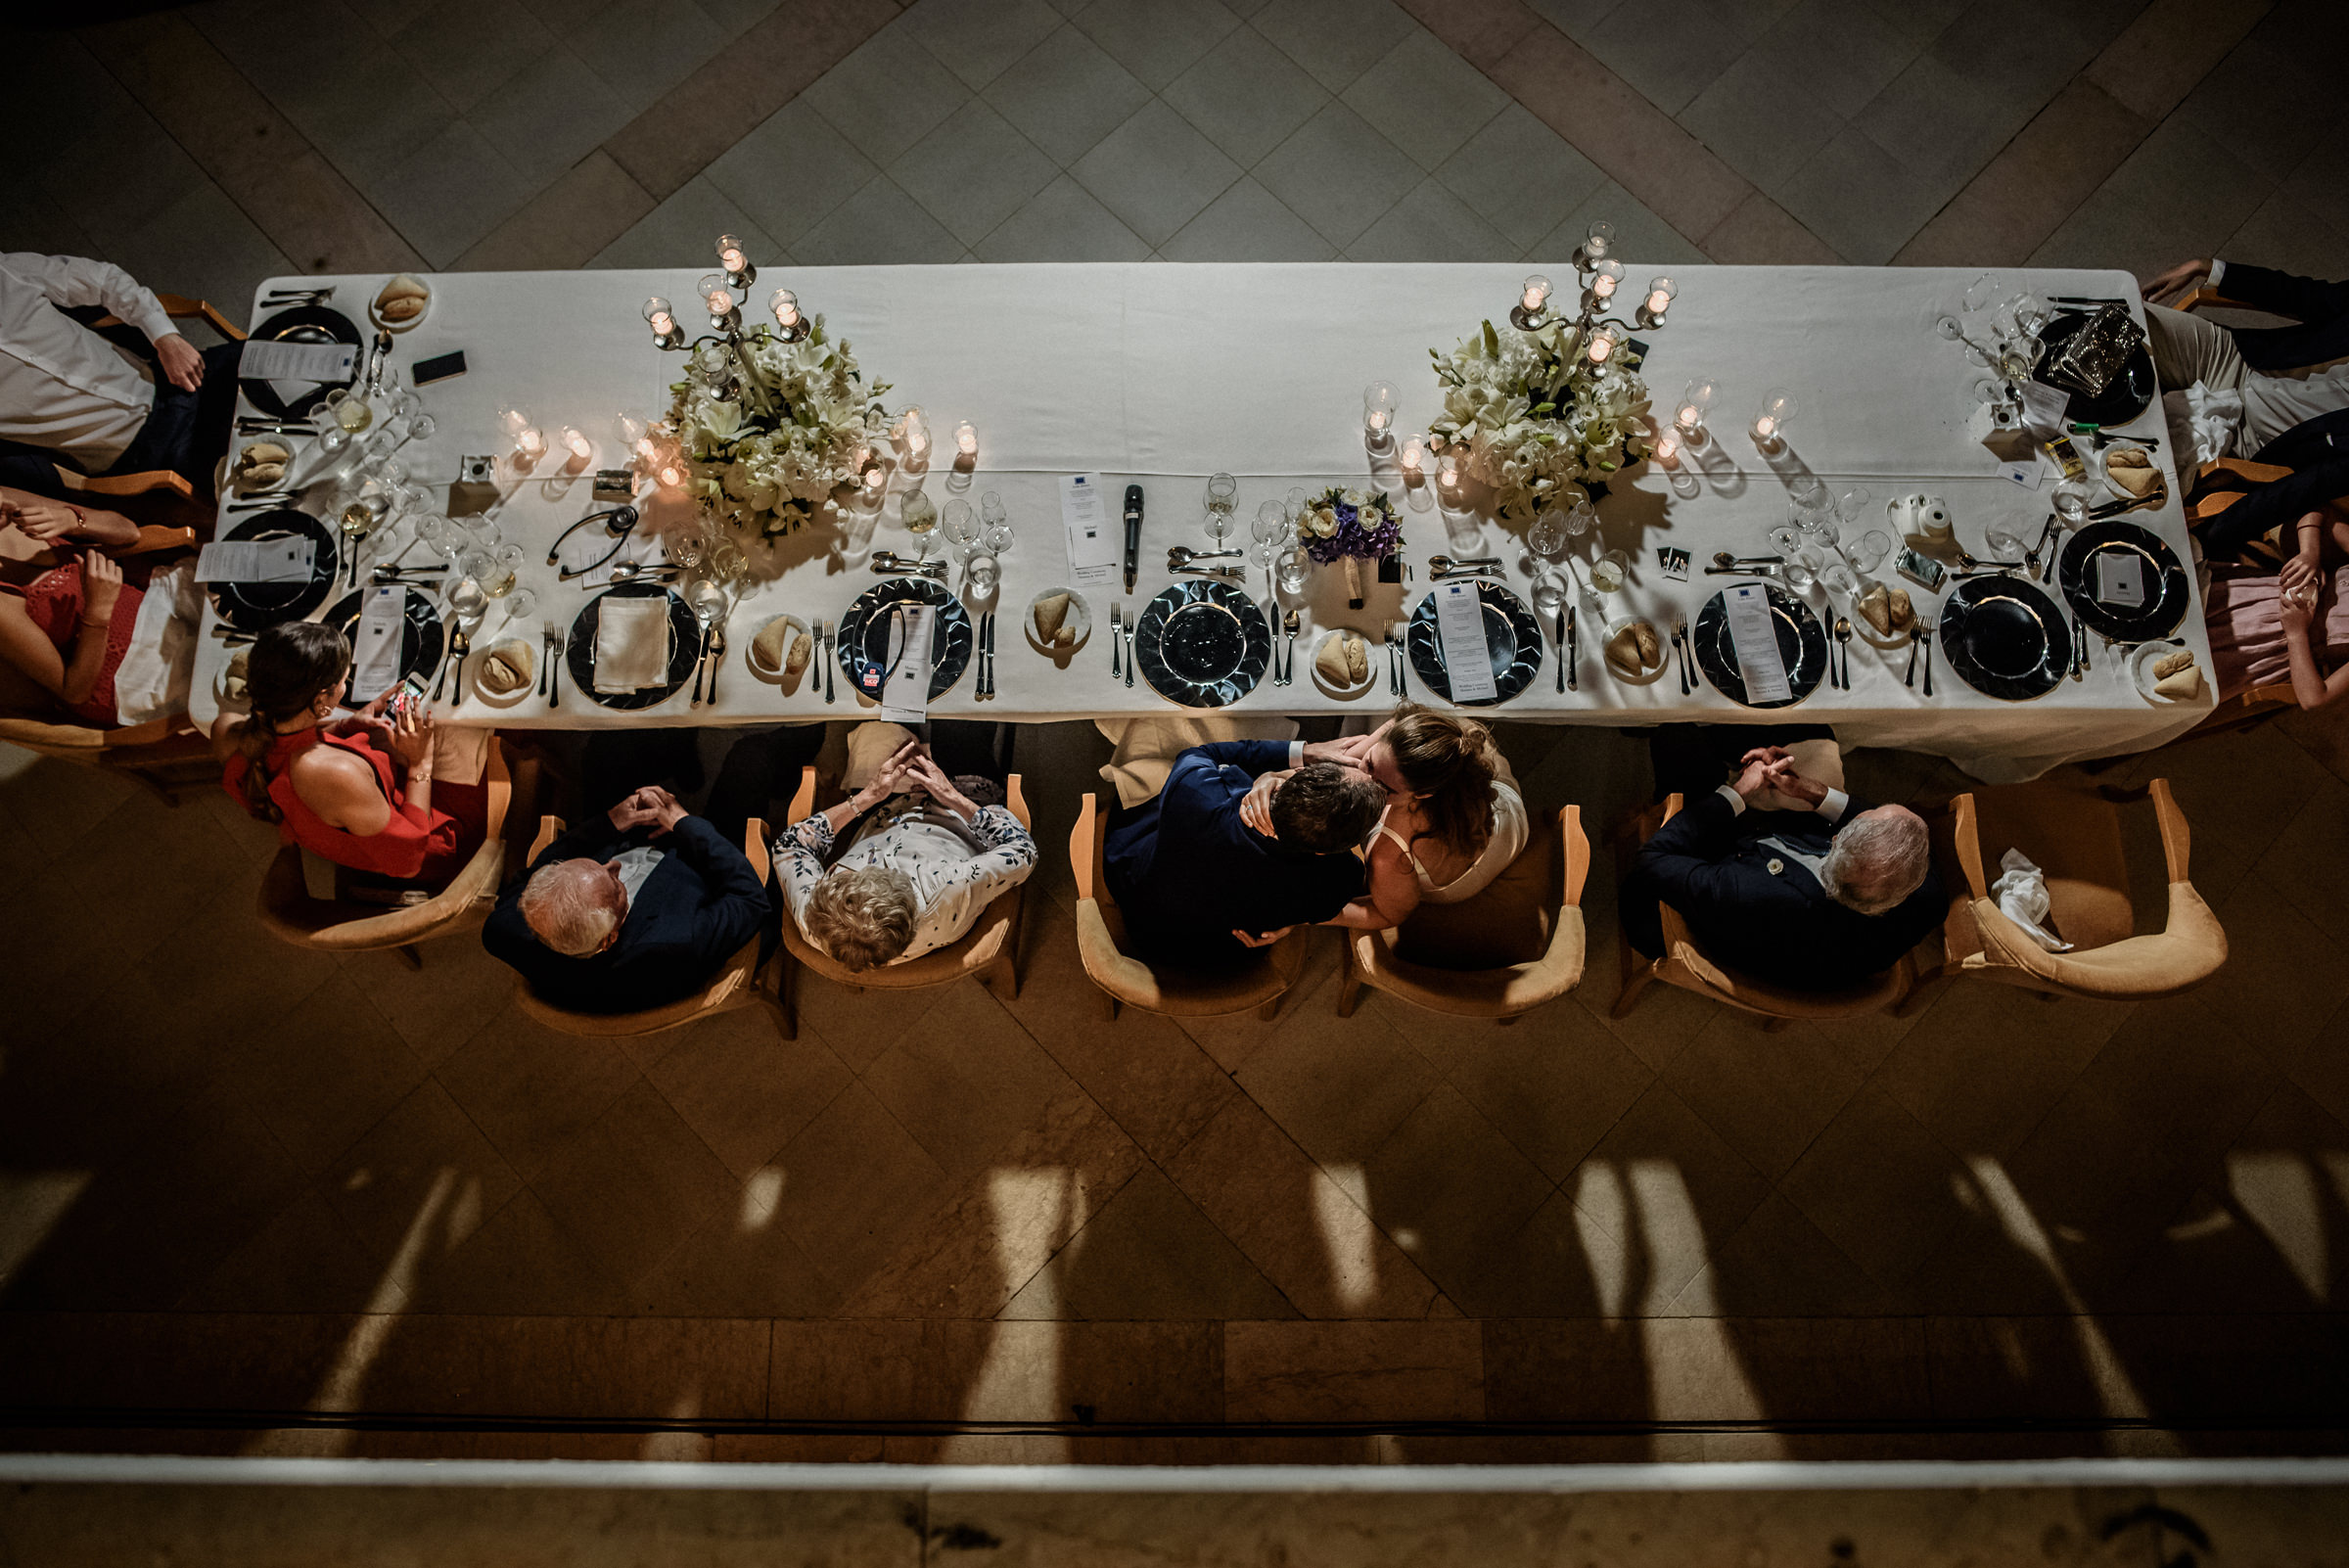 Wedding feast photographed from above - photo by El Marco Rojo